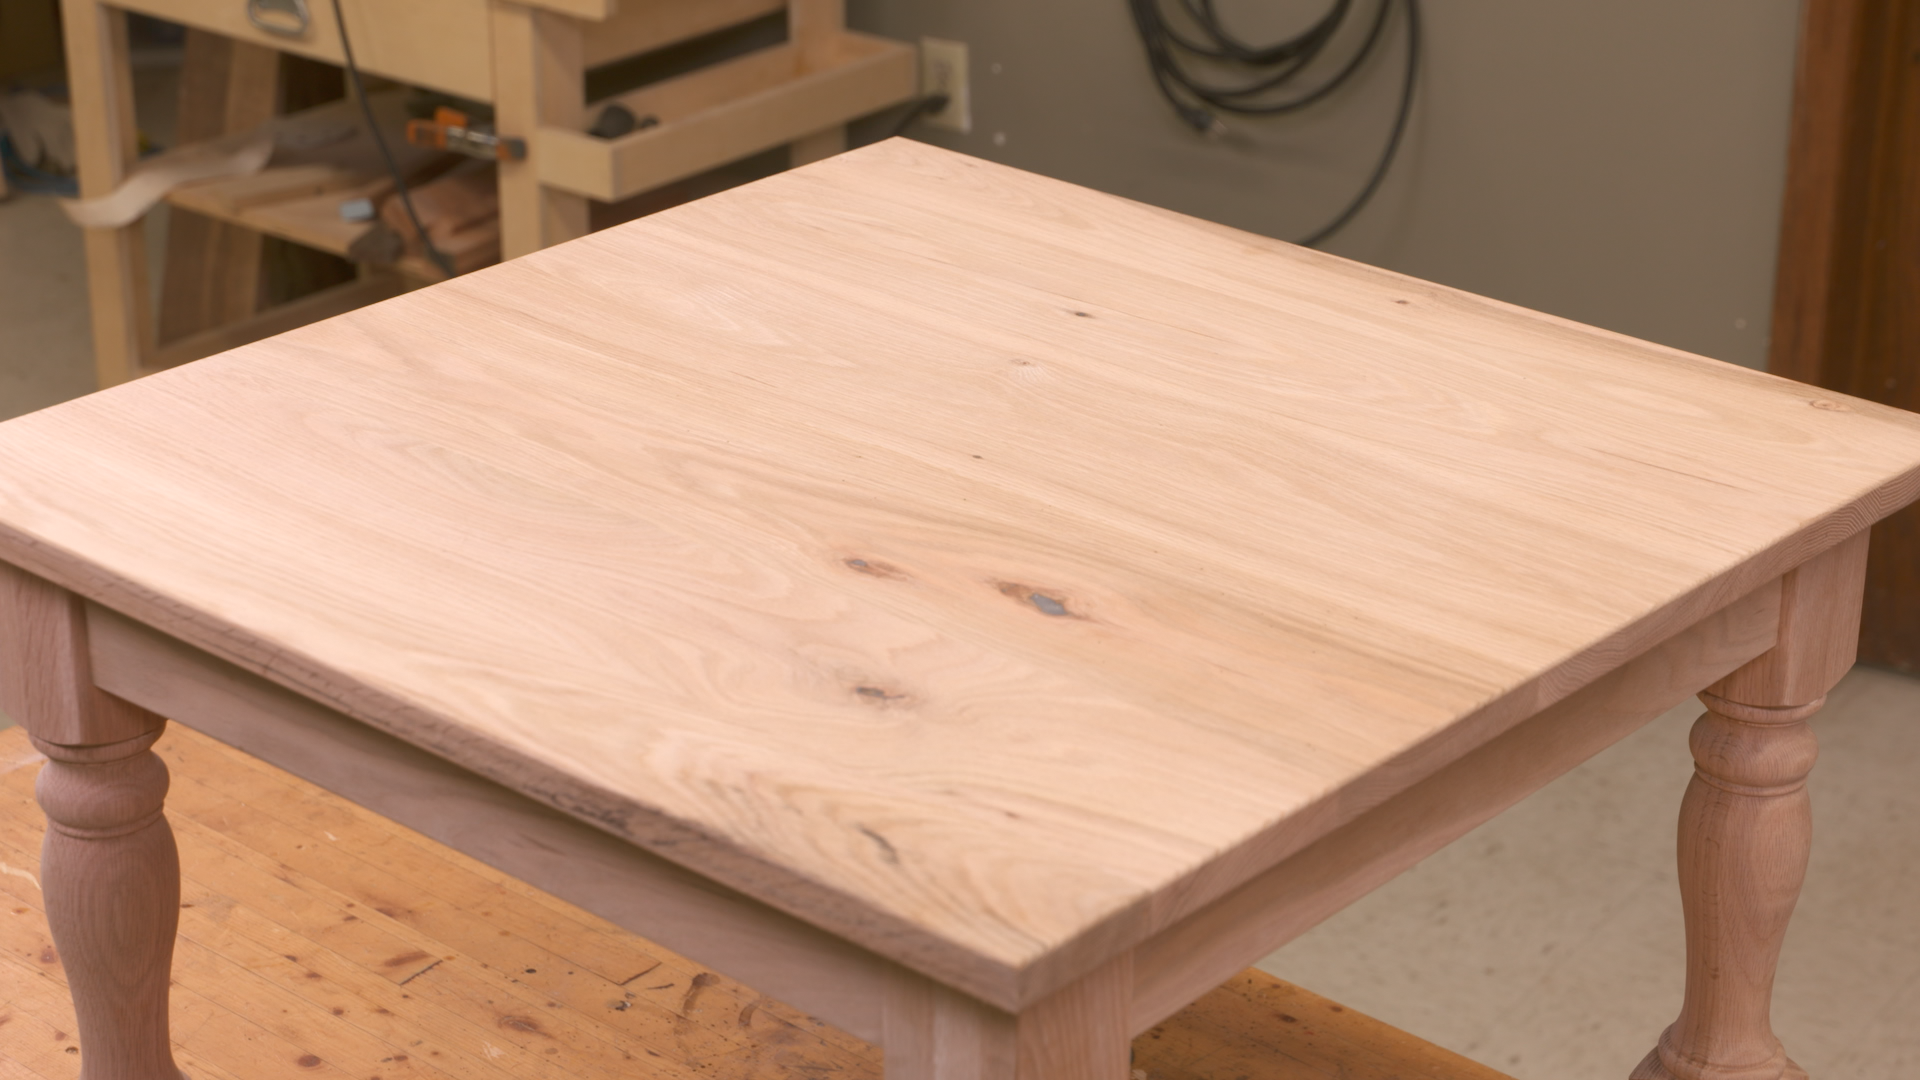 allowing for wood expansion on solid wood tops | wwgoa DLJQFDW